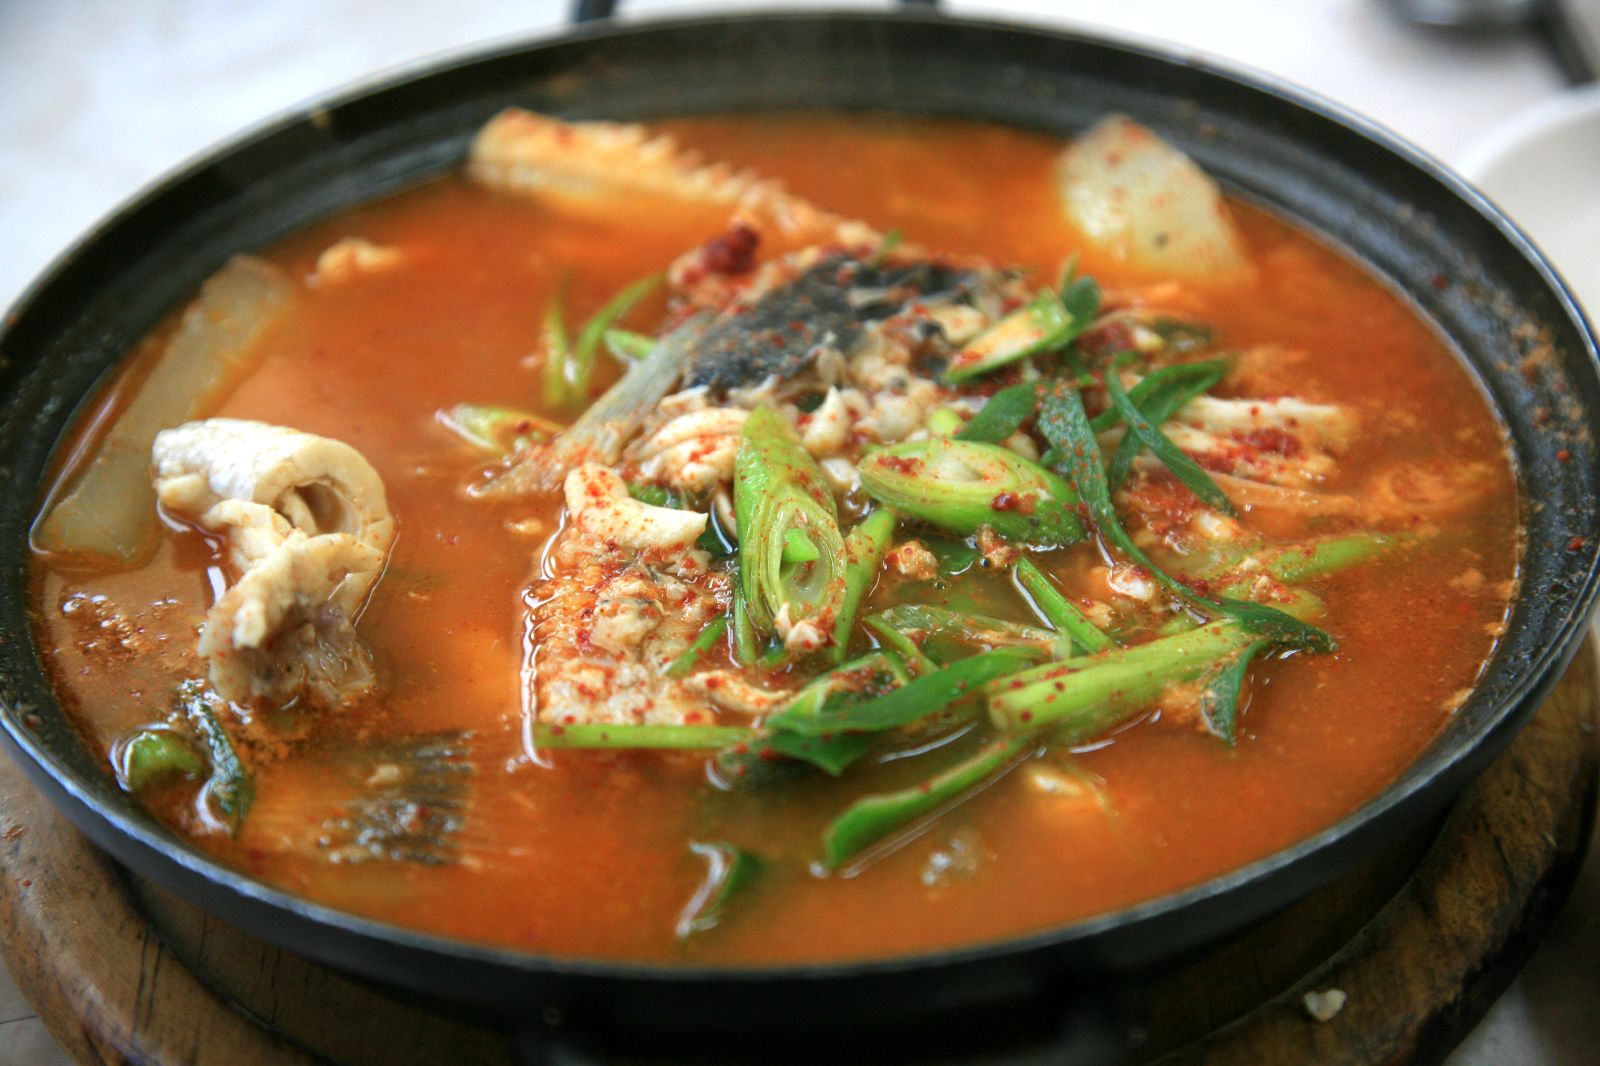 ... Namhae-Mijo Port-Maeuntang-Spicy fish soup-01.jpg - Wikimedia Commons